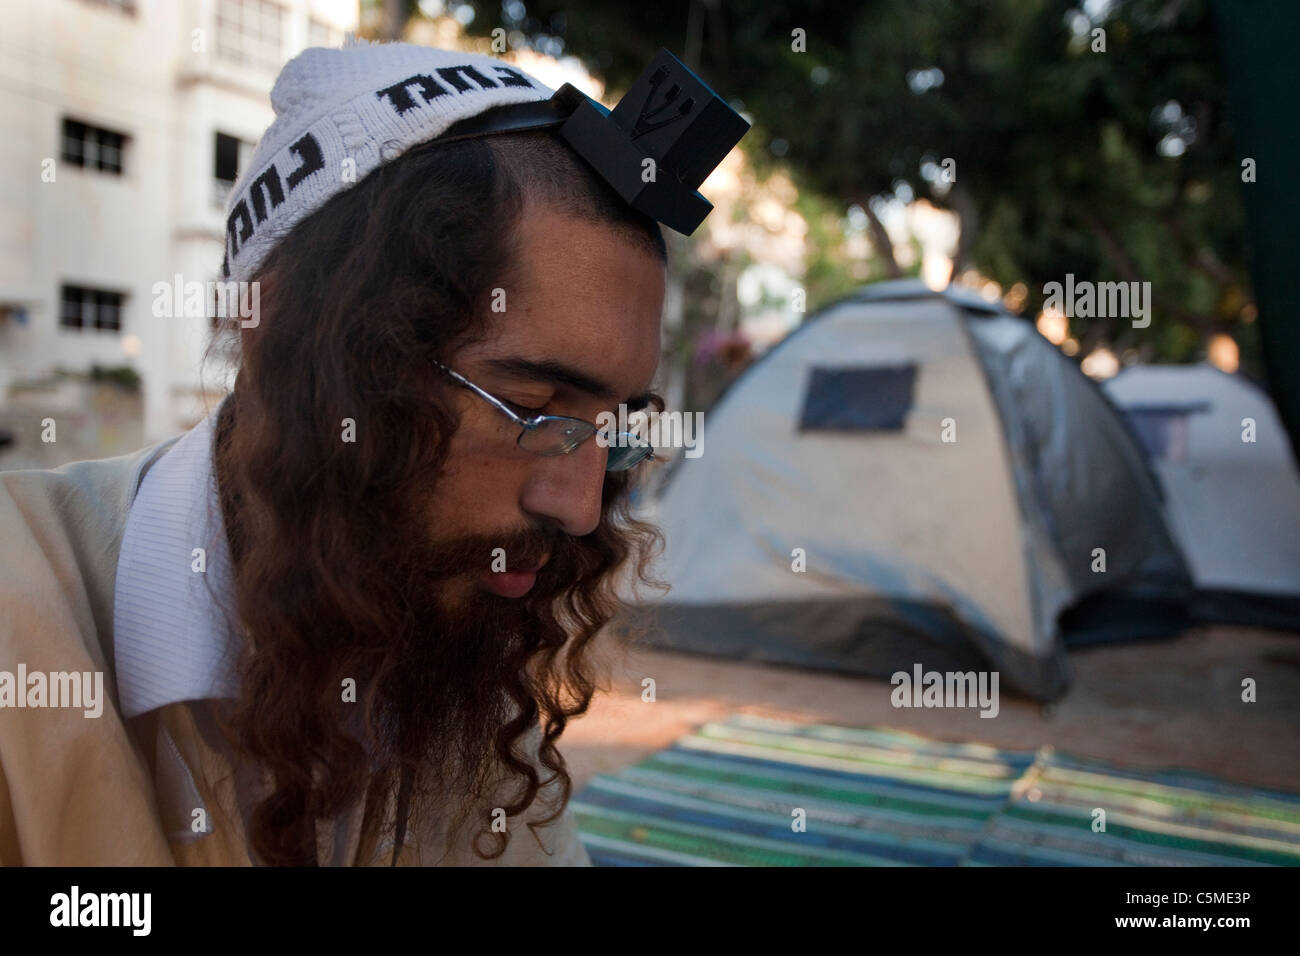 A follower of the Breslov Hassidic Jewish movement praying in the Tent City compound in Rothschild avenue in Central - Stock Image